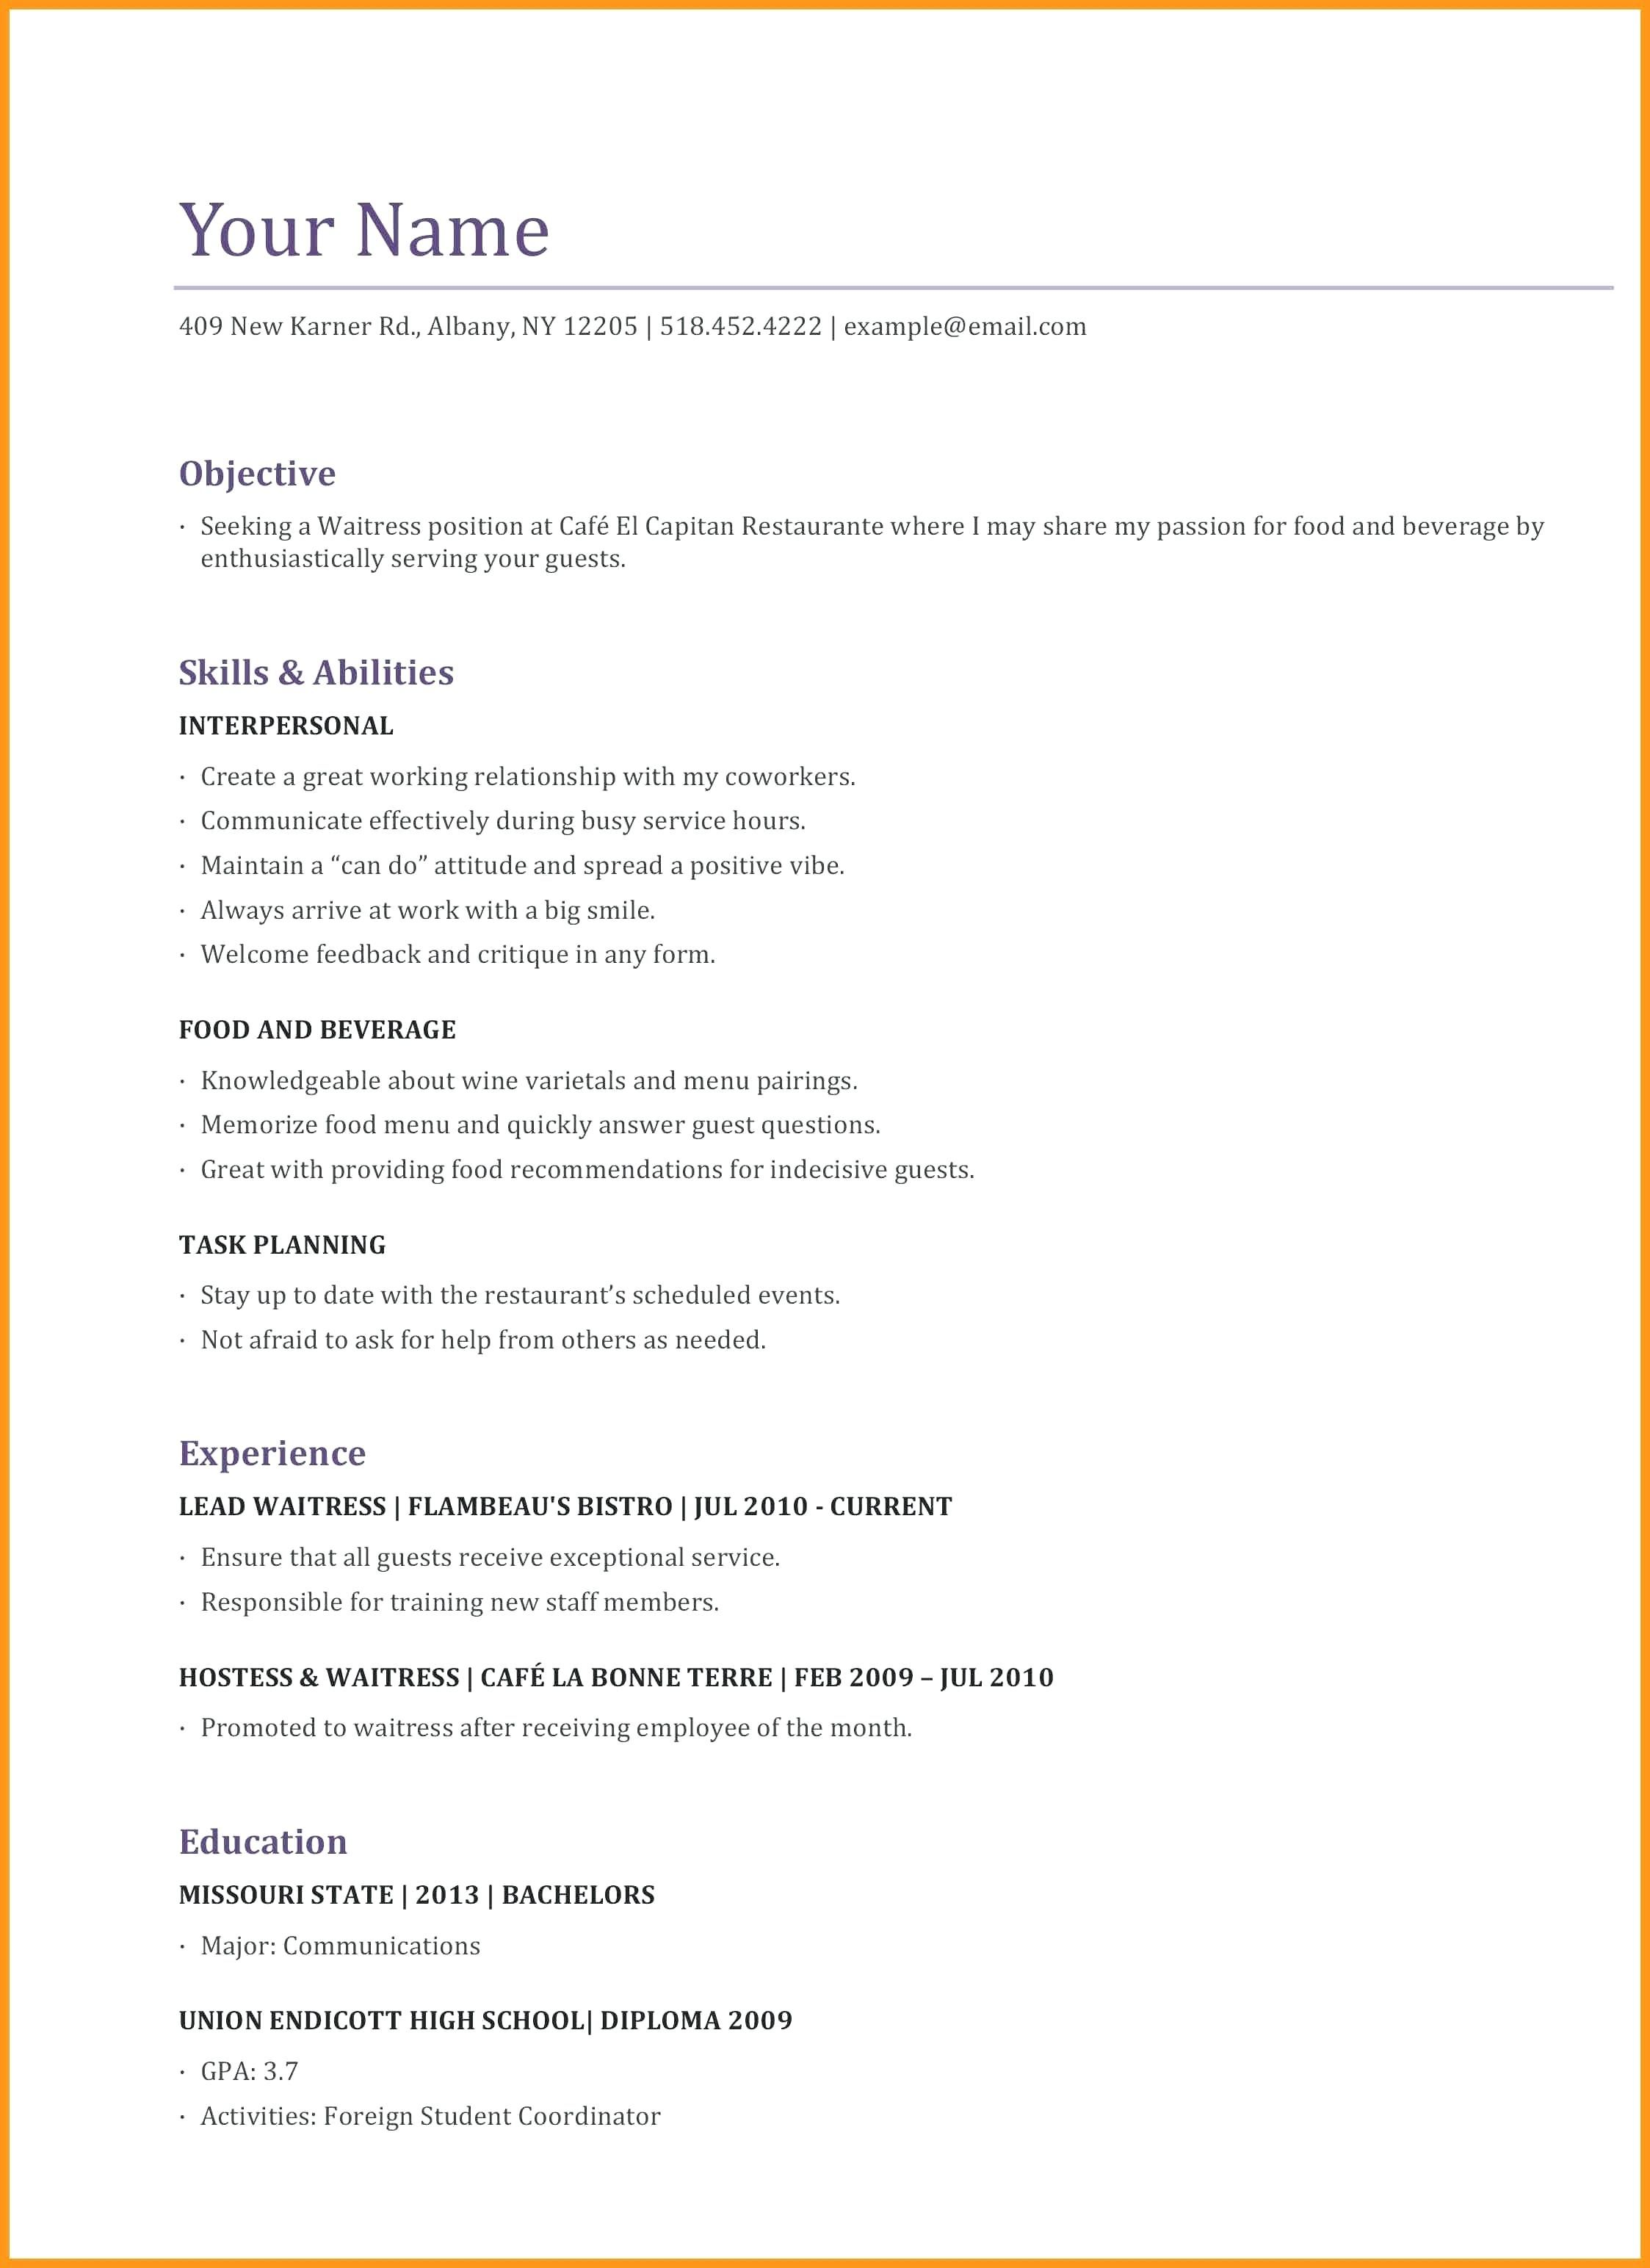 Resume Examples Me Nbspthis Website Is For Sale Nbspresume Examples Resources And Information Good Resume Examples Server Resume Resume Skills